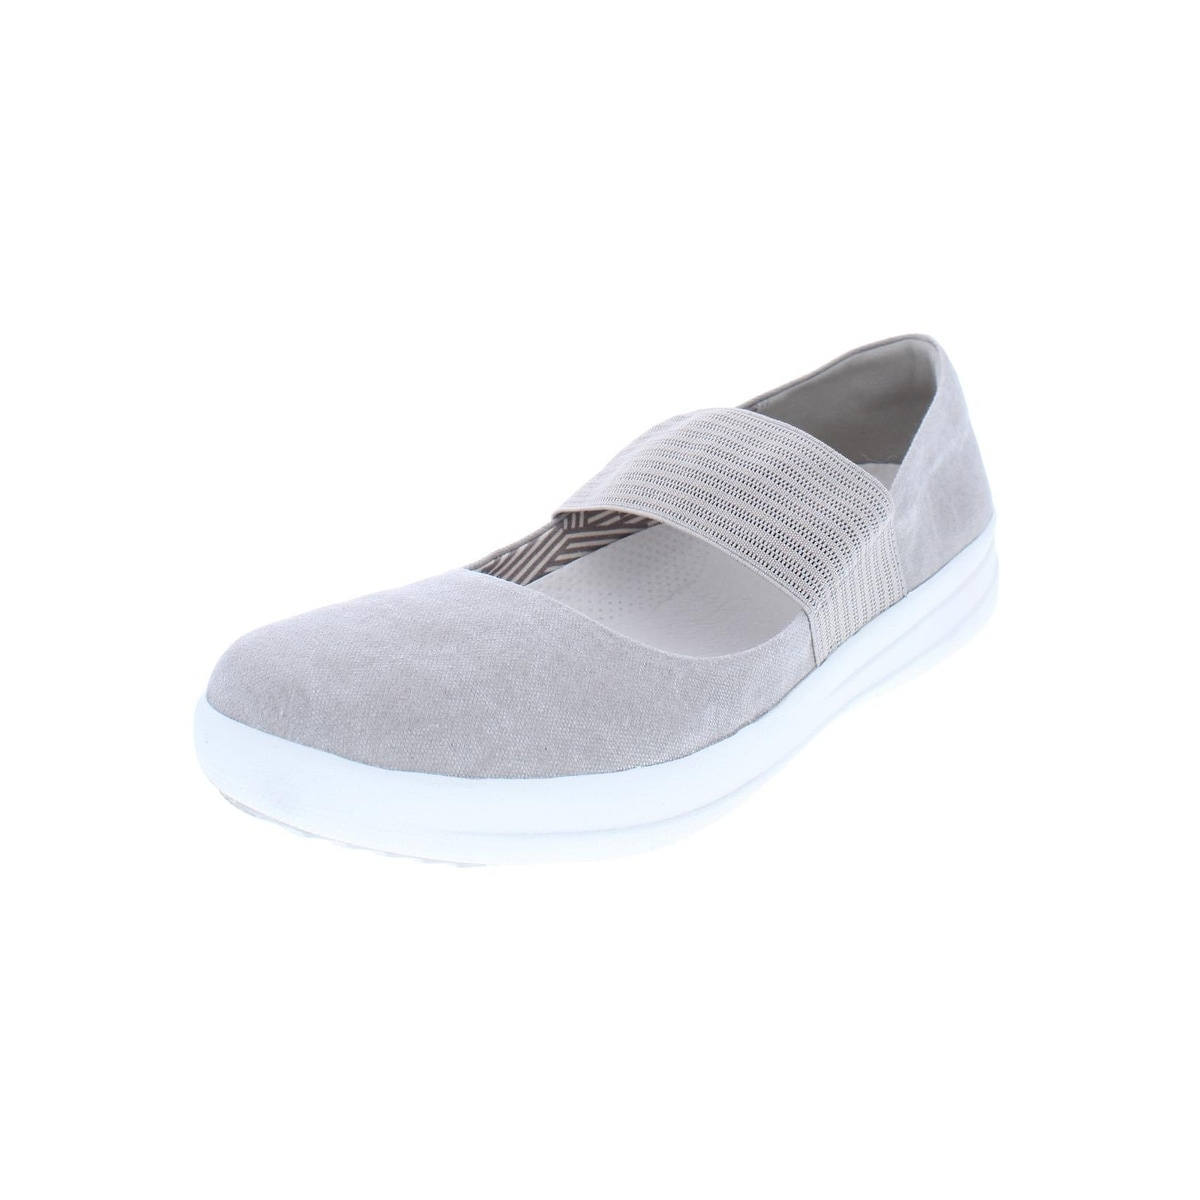 6bfcb5b0d Shop Fitflop Womens F-Sporty Mary Jane Mary Janes Padded Insole Slip ...